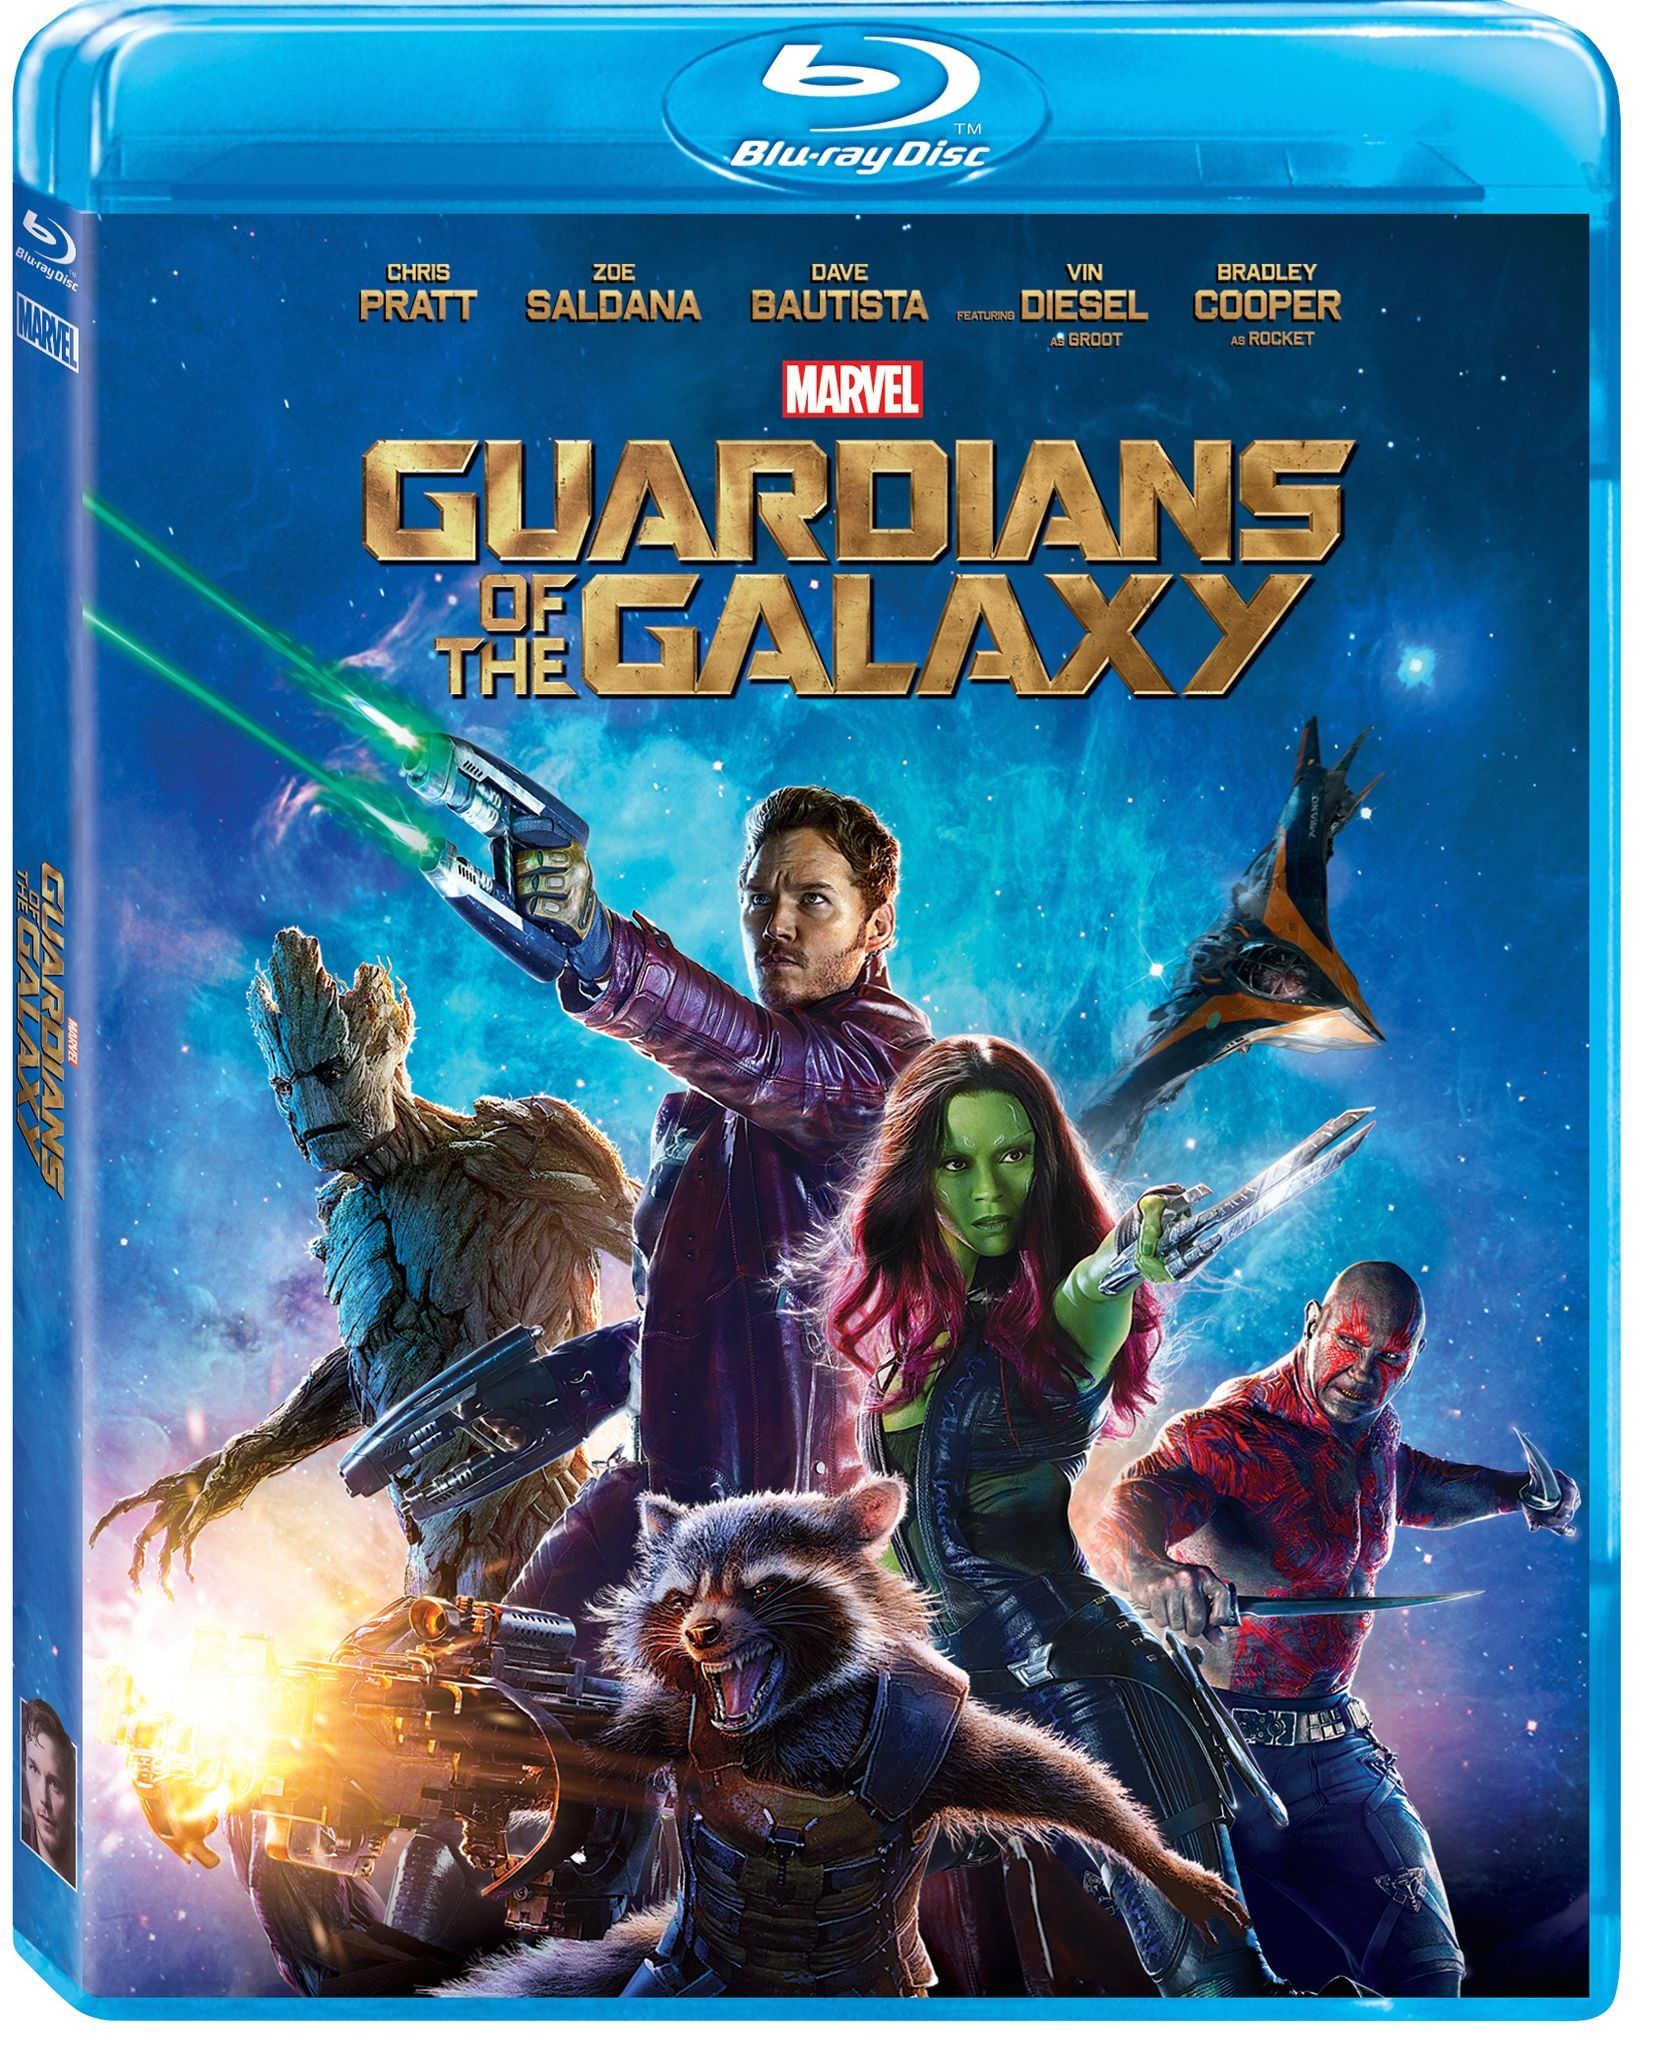 'Guardians of the Galaxy' Blu-ray Features 'Avengers 2 ...